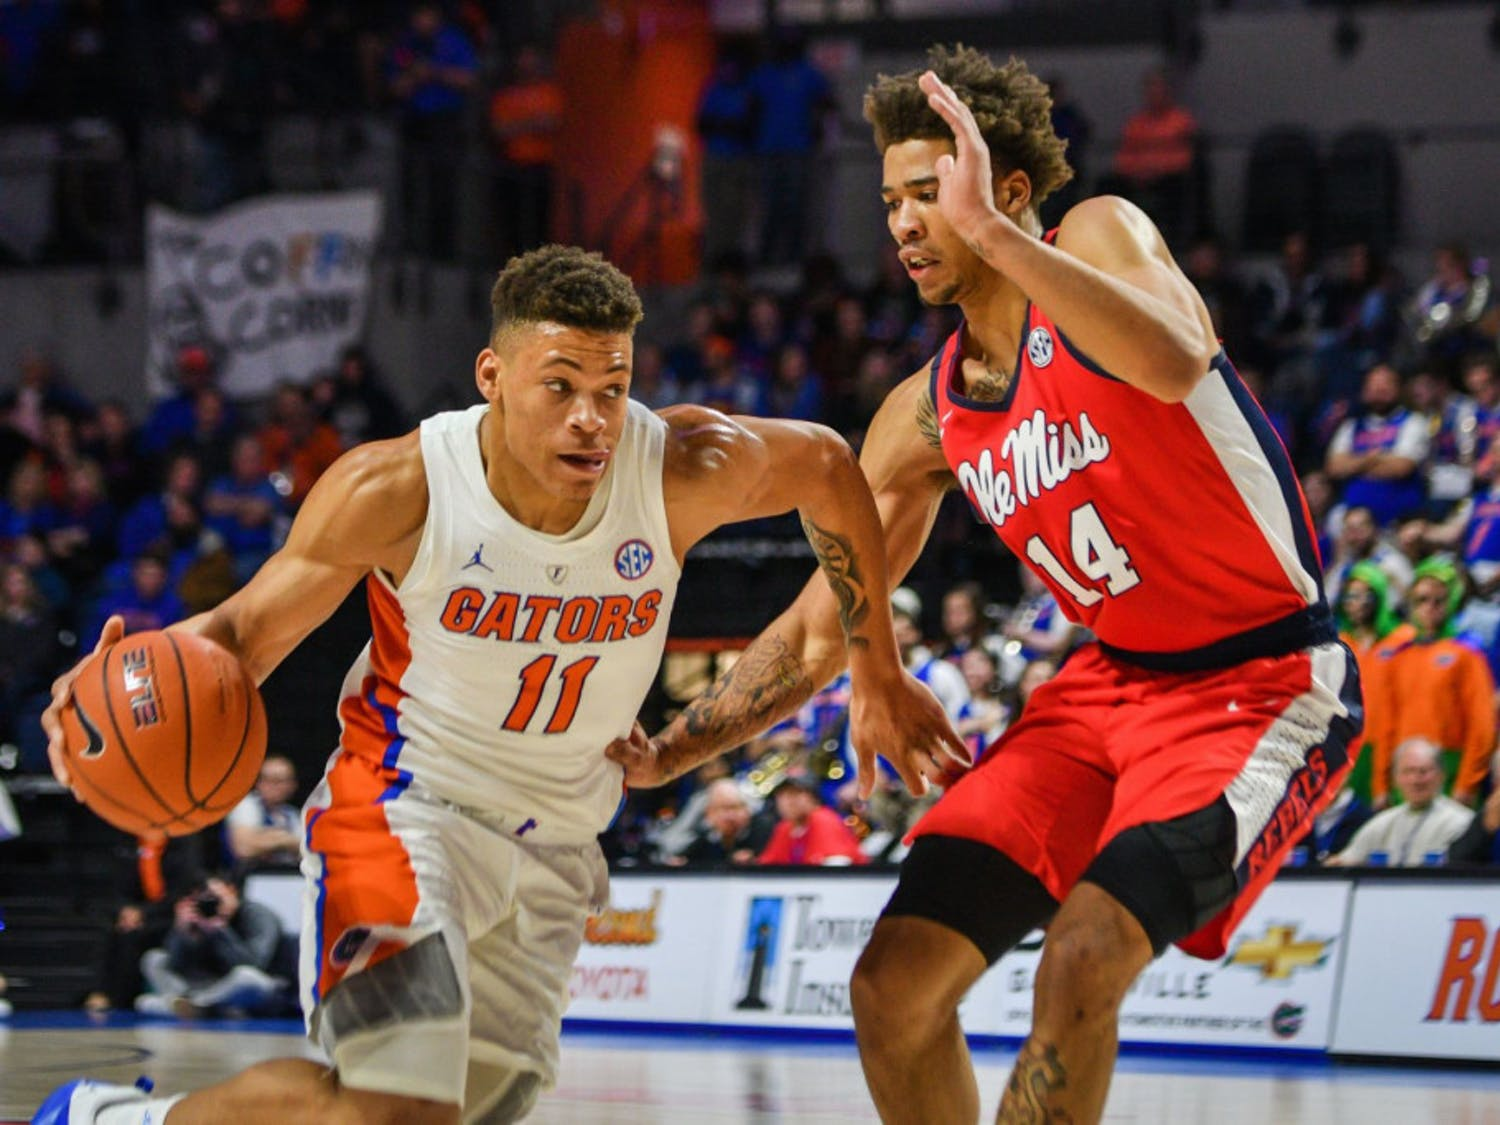 Freshman forward Keyontae Johnson made his fourth career start against Ole Miss on Wednesday. He finished with 15 points and six rebounds in the Gators' 90-86 overtime win over the Rebels.